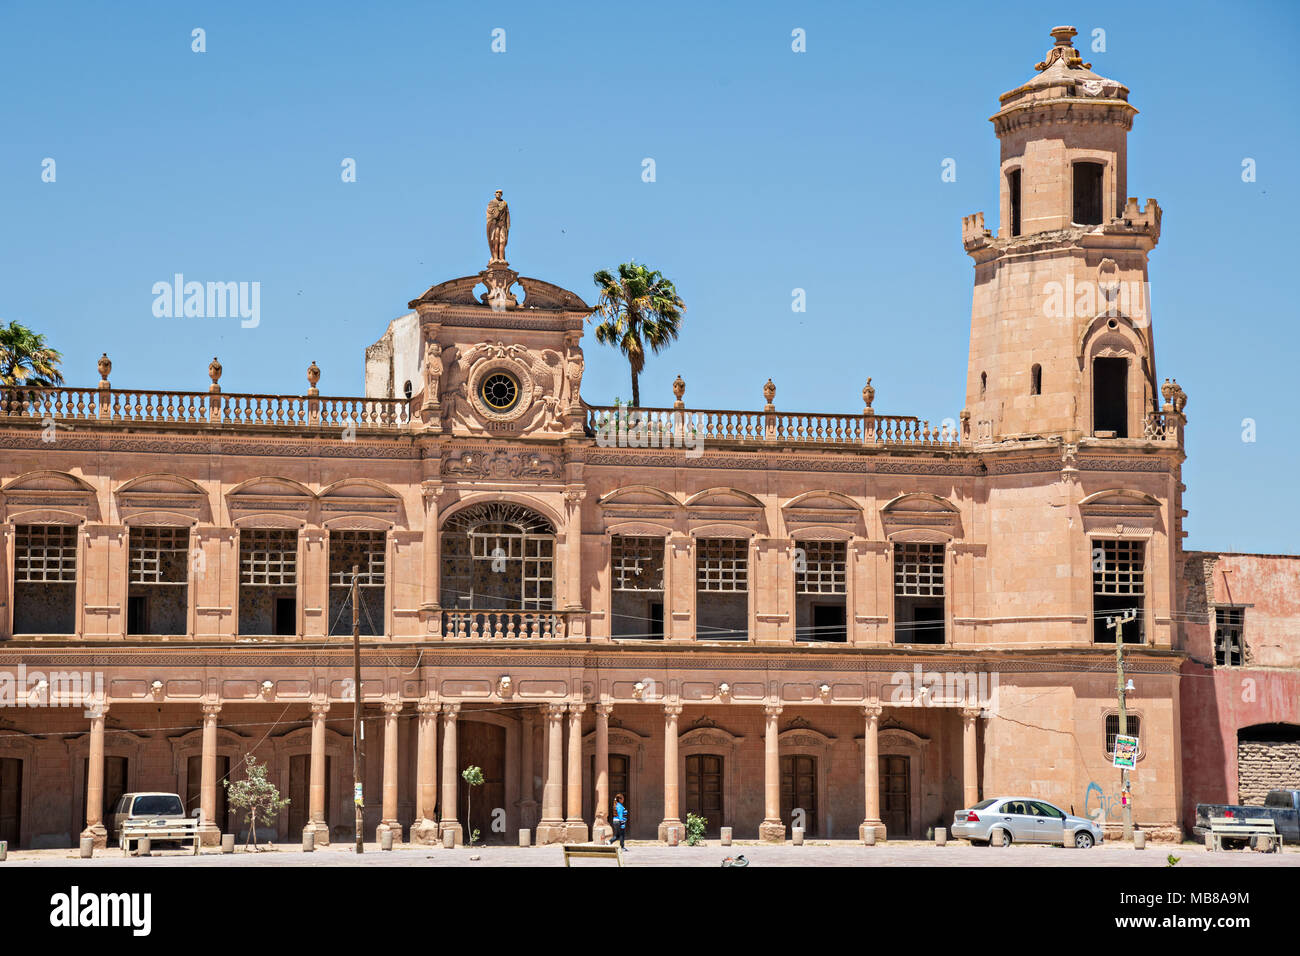 The front towers of the Hacienda de Jaral de Berrio in Jaral de Berrios, Guanajuato, Mexico. The abandoned Jaral de Berrio hacienda was once the largest in Mexico and housed over 6,000 people on the property and is credited with creating Mescal. - Stock Image